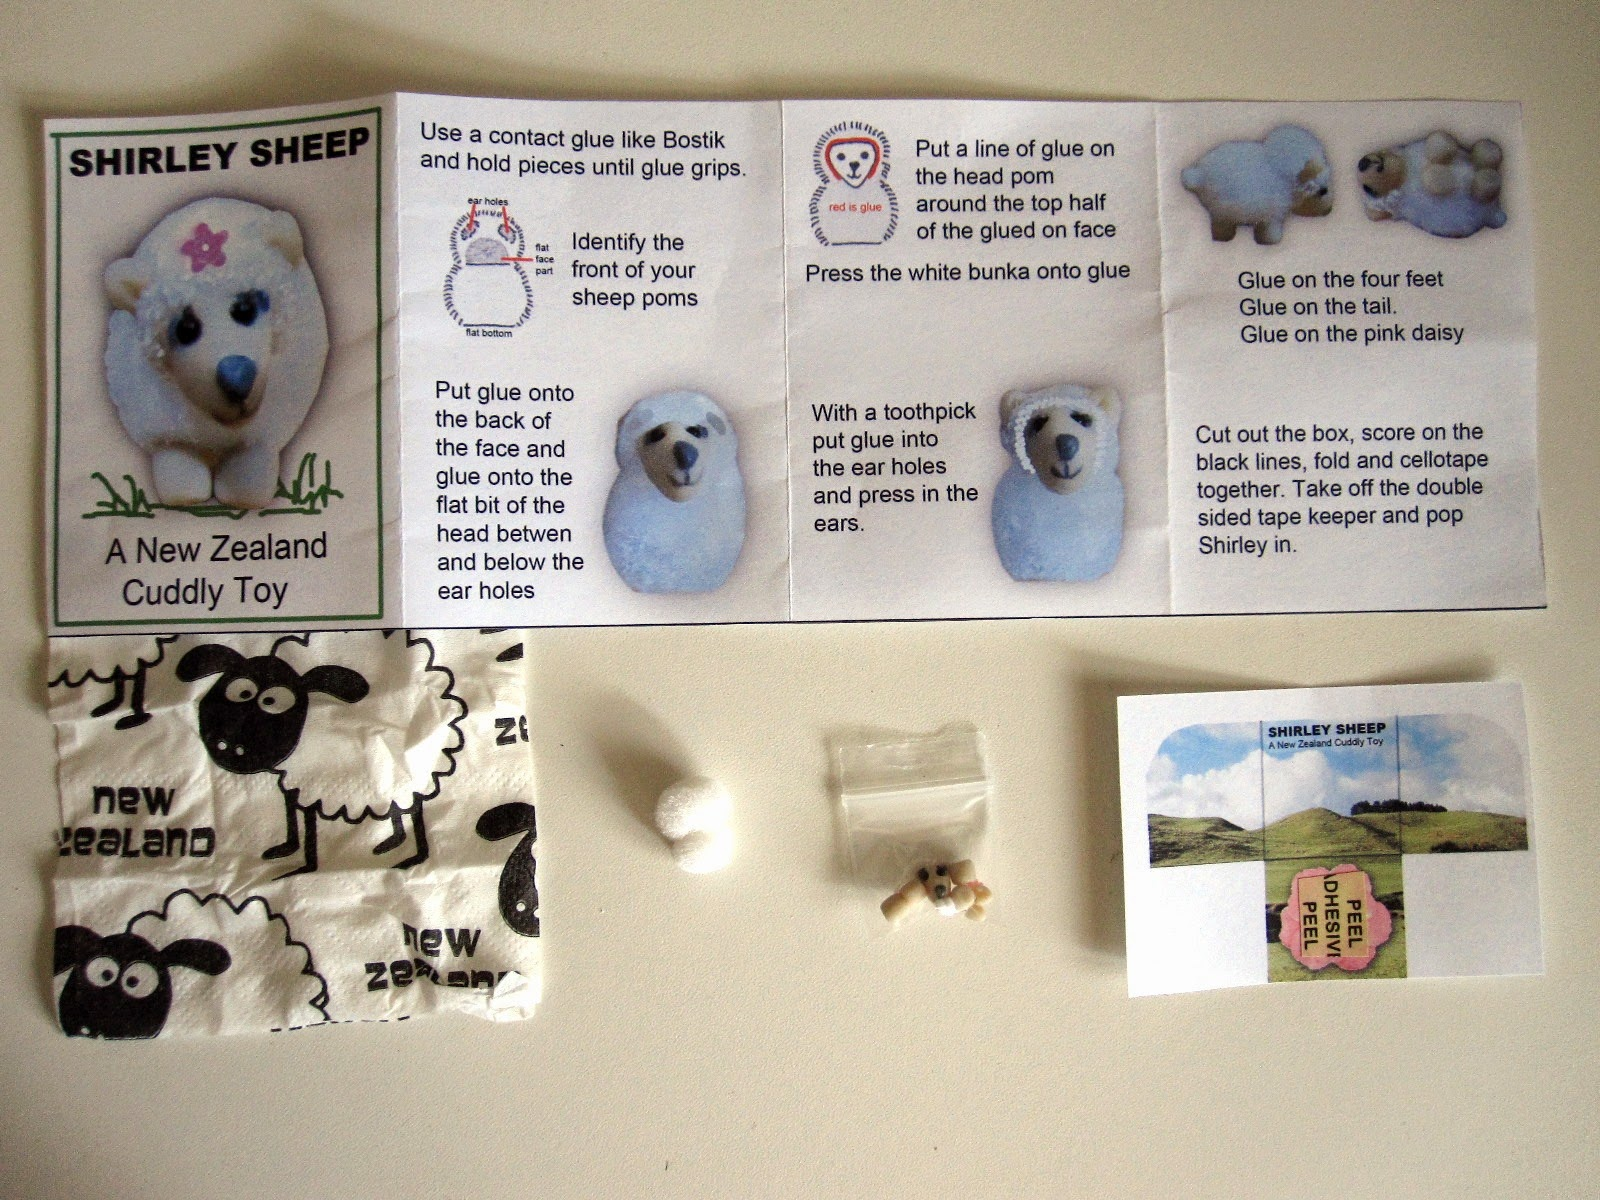 Instructions and contents of a miniature 'Shirley Sheep: a New Zealand cuddly toy' kit.